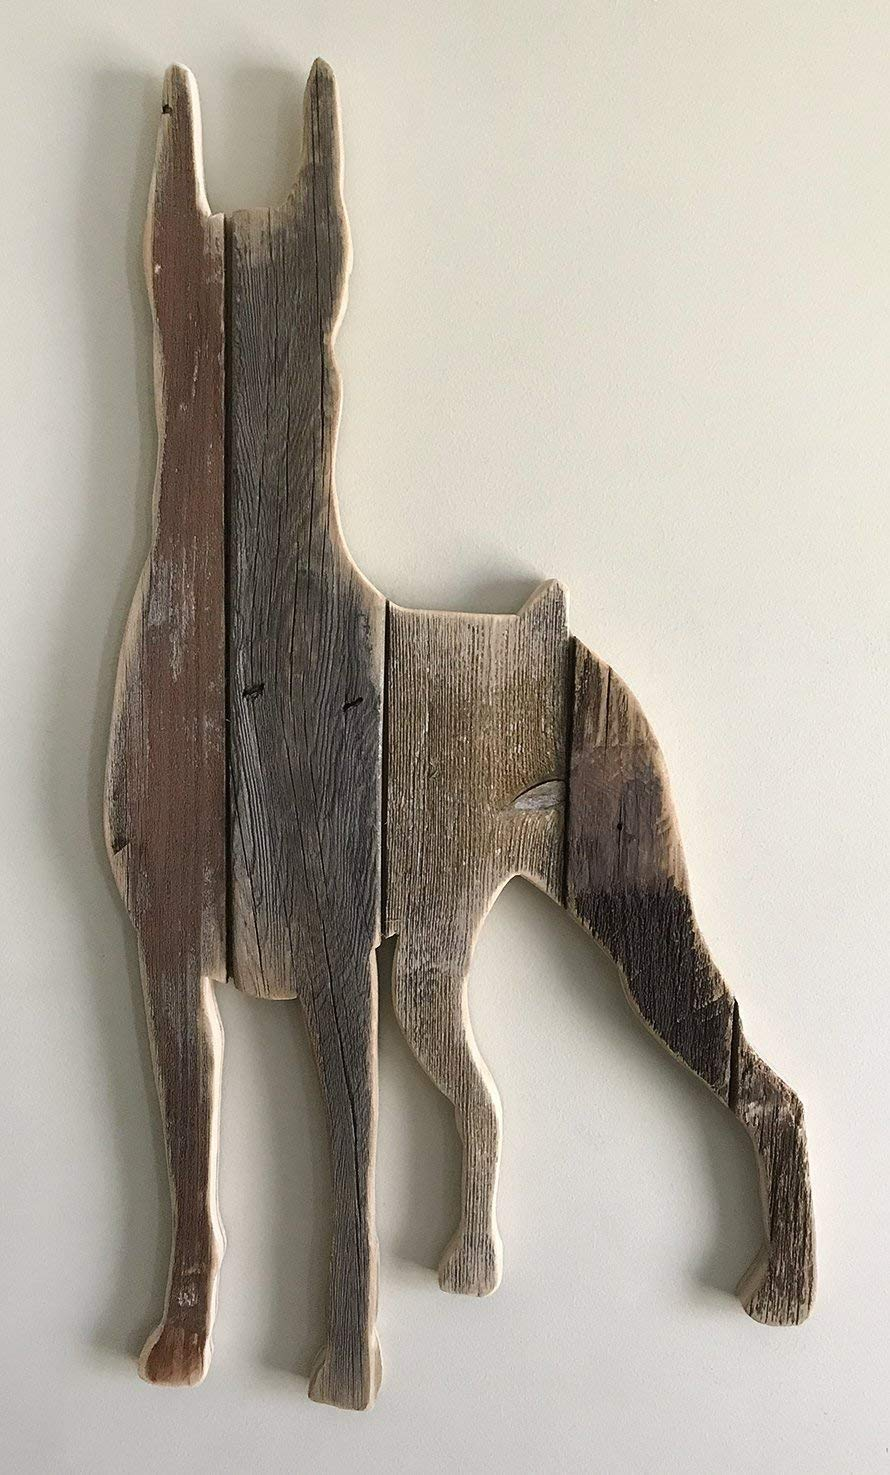 sold-order yours now Doberman Pinscher Wooden Artwork